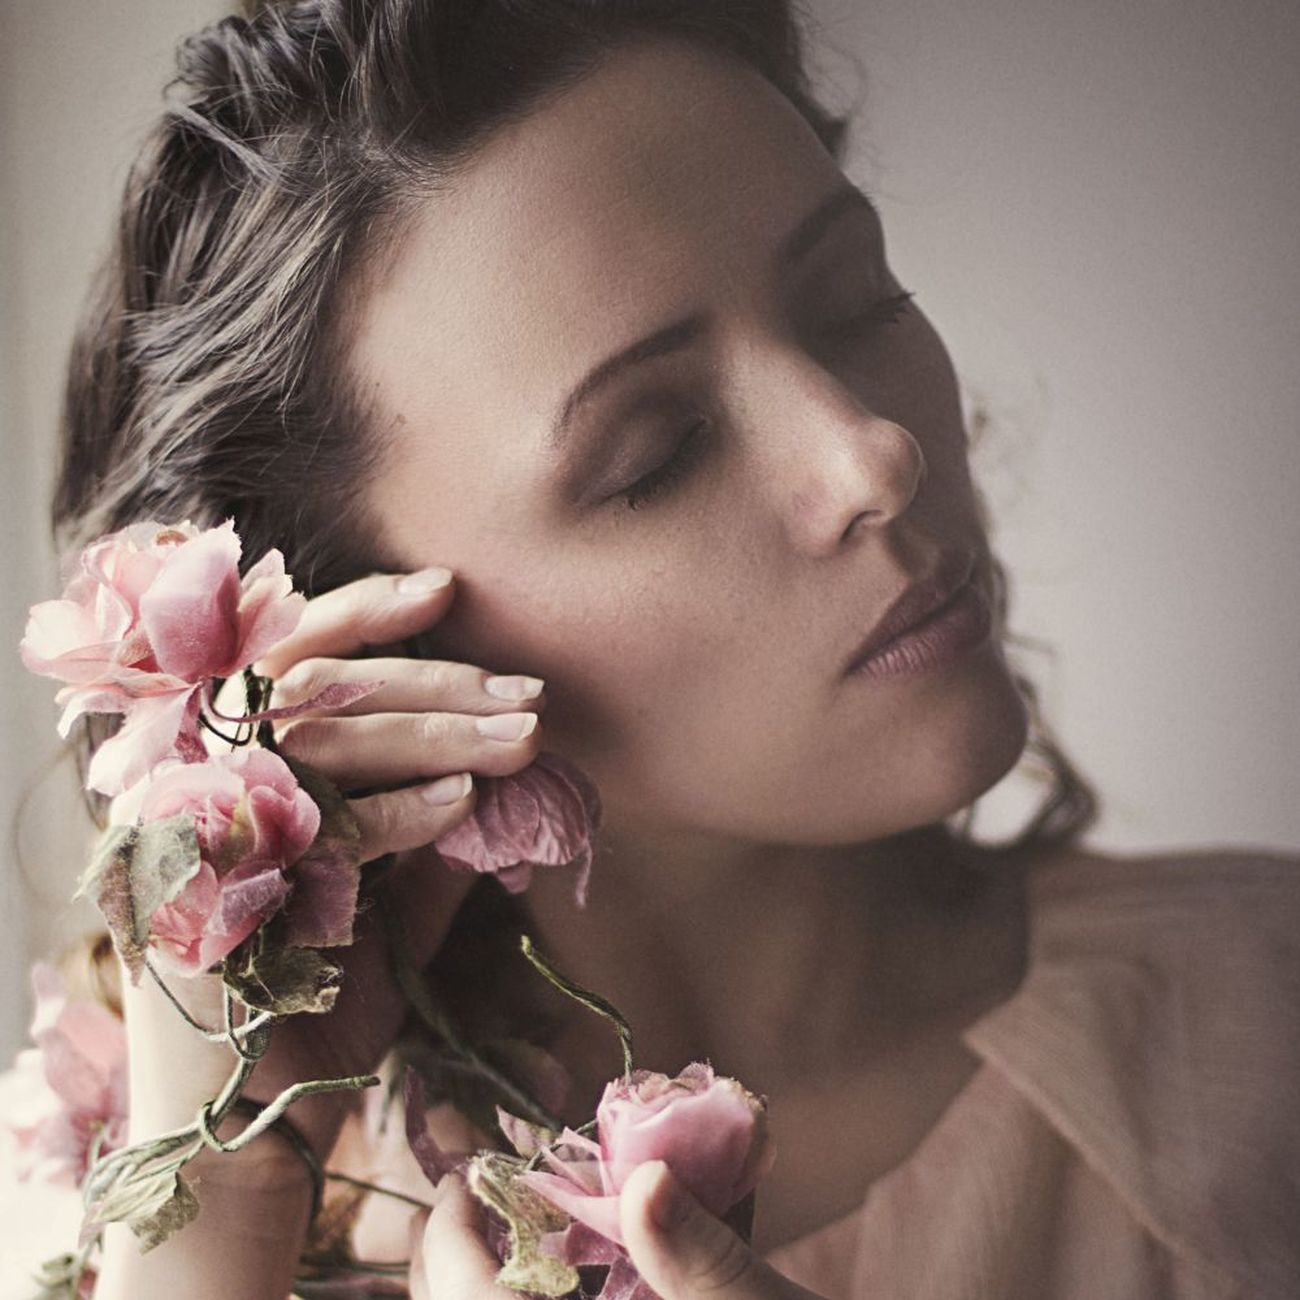 Weronika Flower Women Beauty Portrait People Indoors  Portrait Of A Woman Artphotography Beautiful People The Week Of Eyeem Portrait Photography Human Hand Beautiful Woman Light And Shadow Canon Young Women Woman Portraiture Artistic Photography